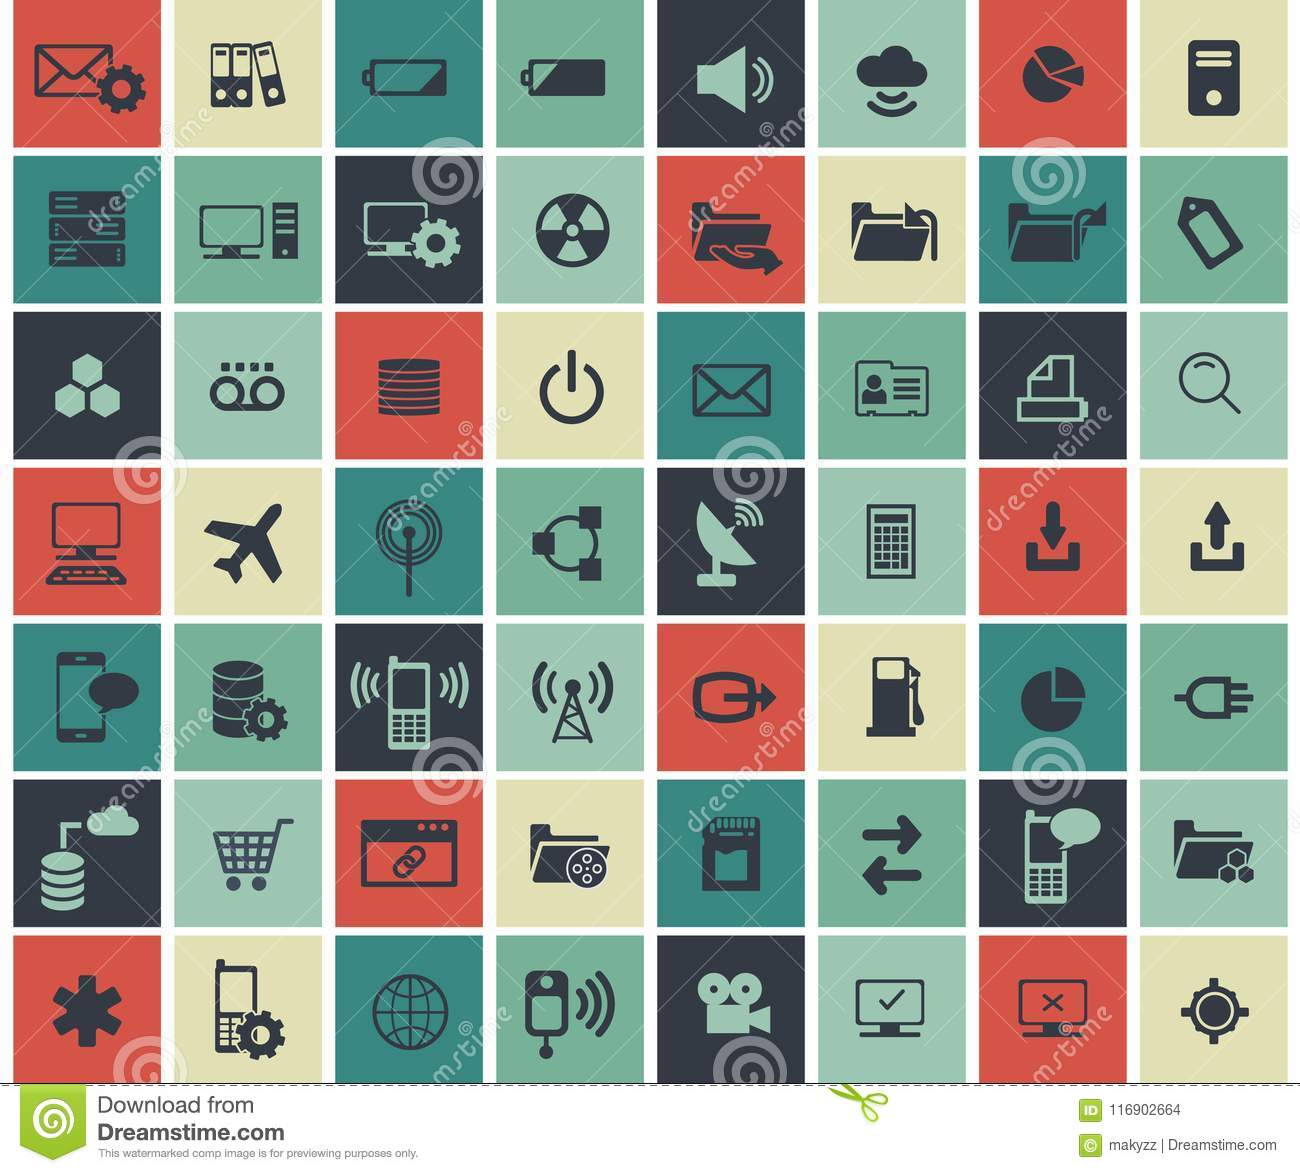 Social network, data analytic, mobile and web application icon set. Flat vector